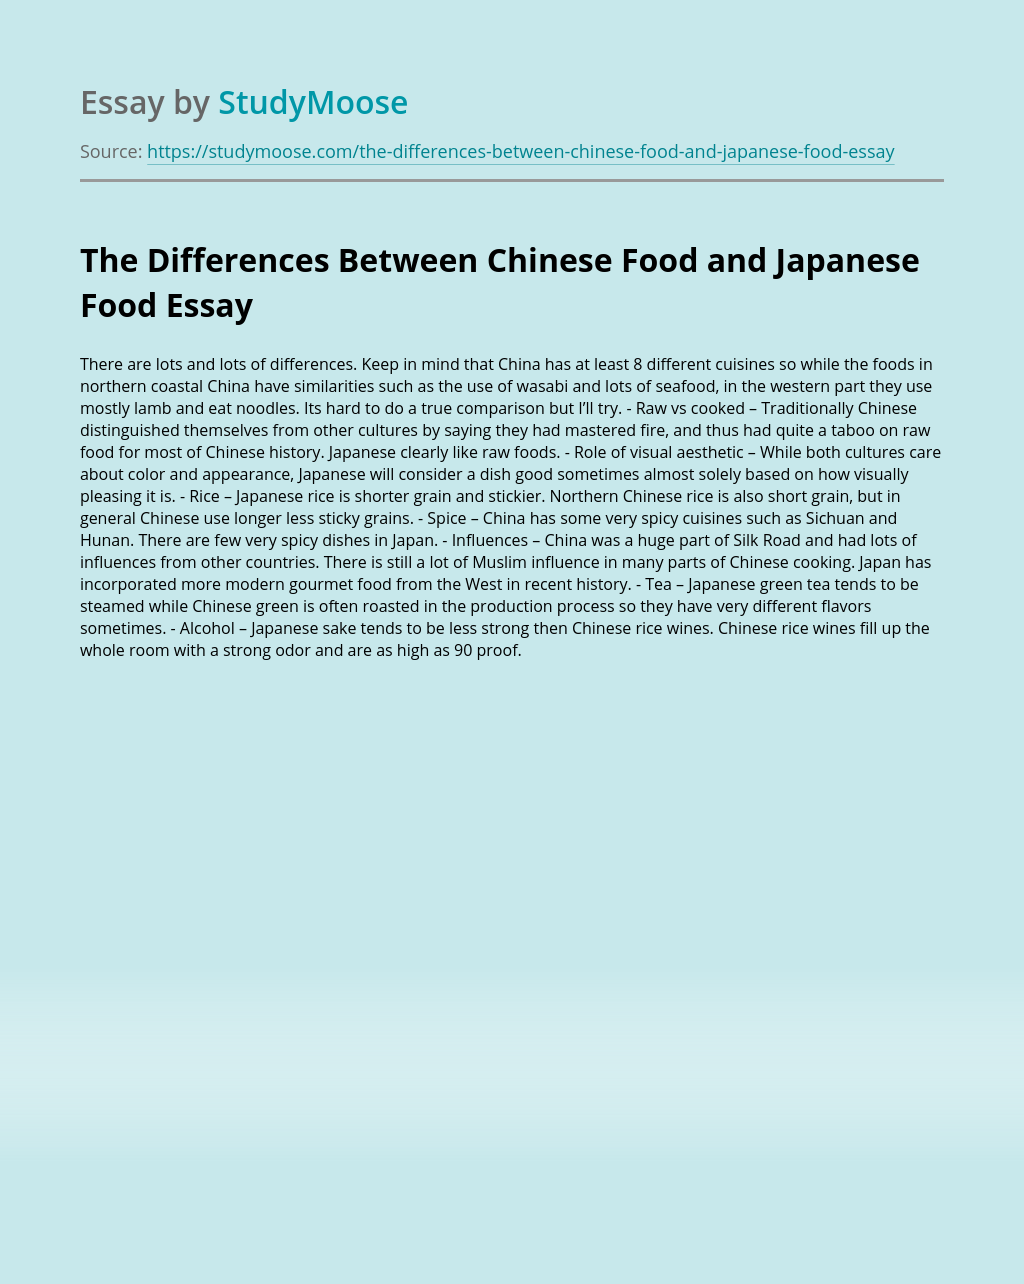 The Differences Between Chinese Food and Japanese Food